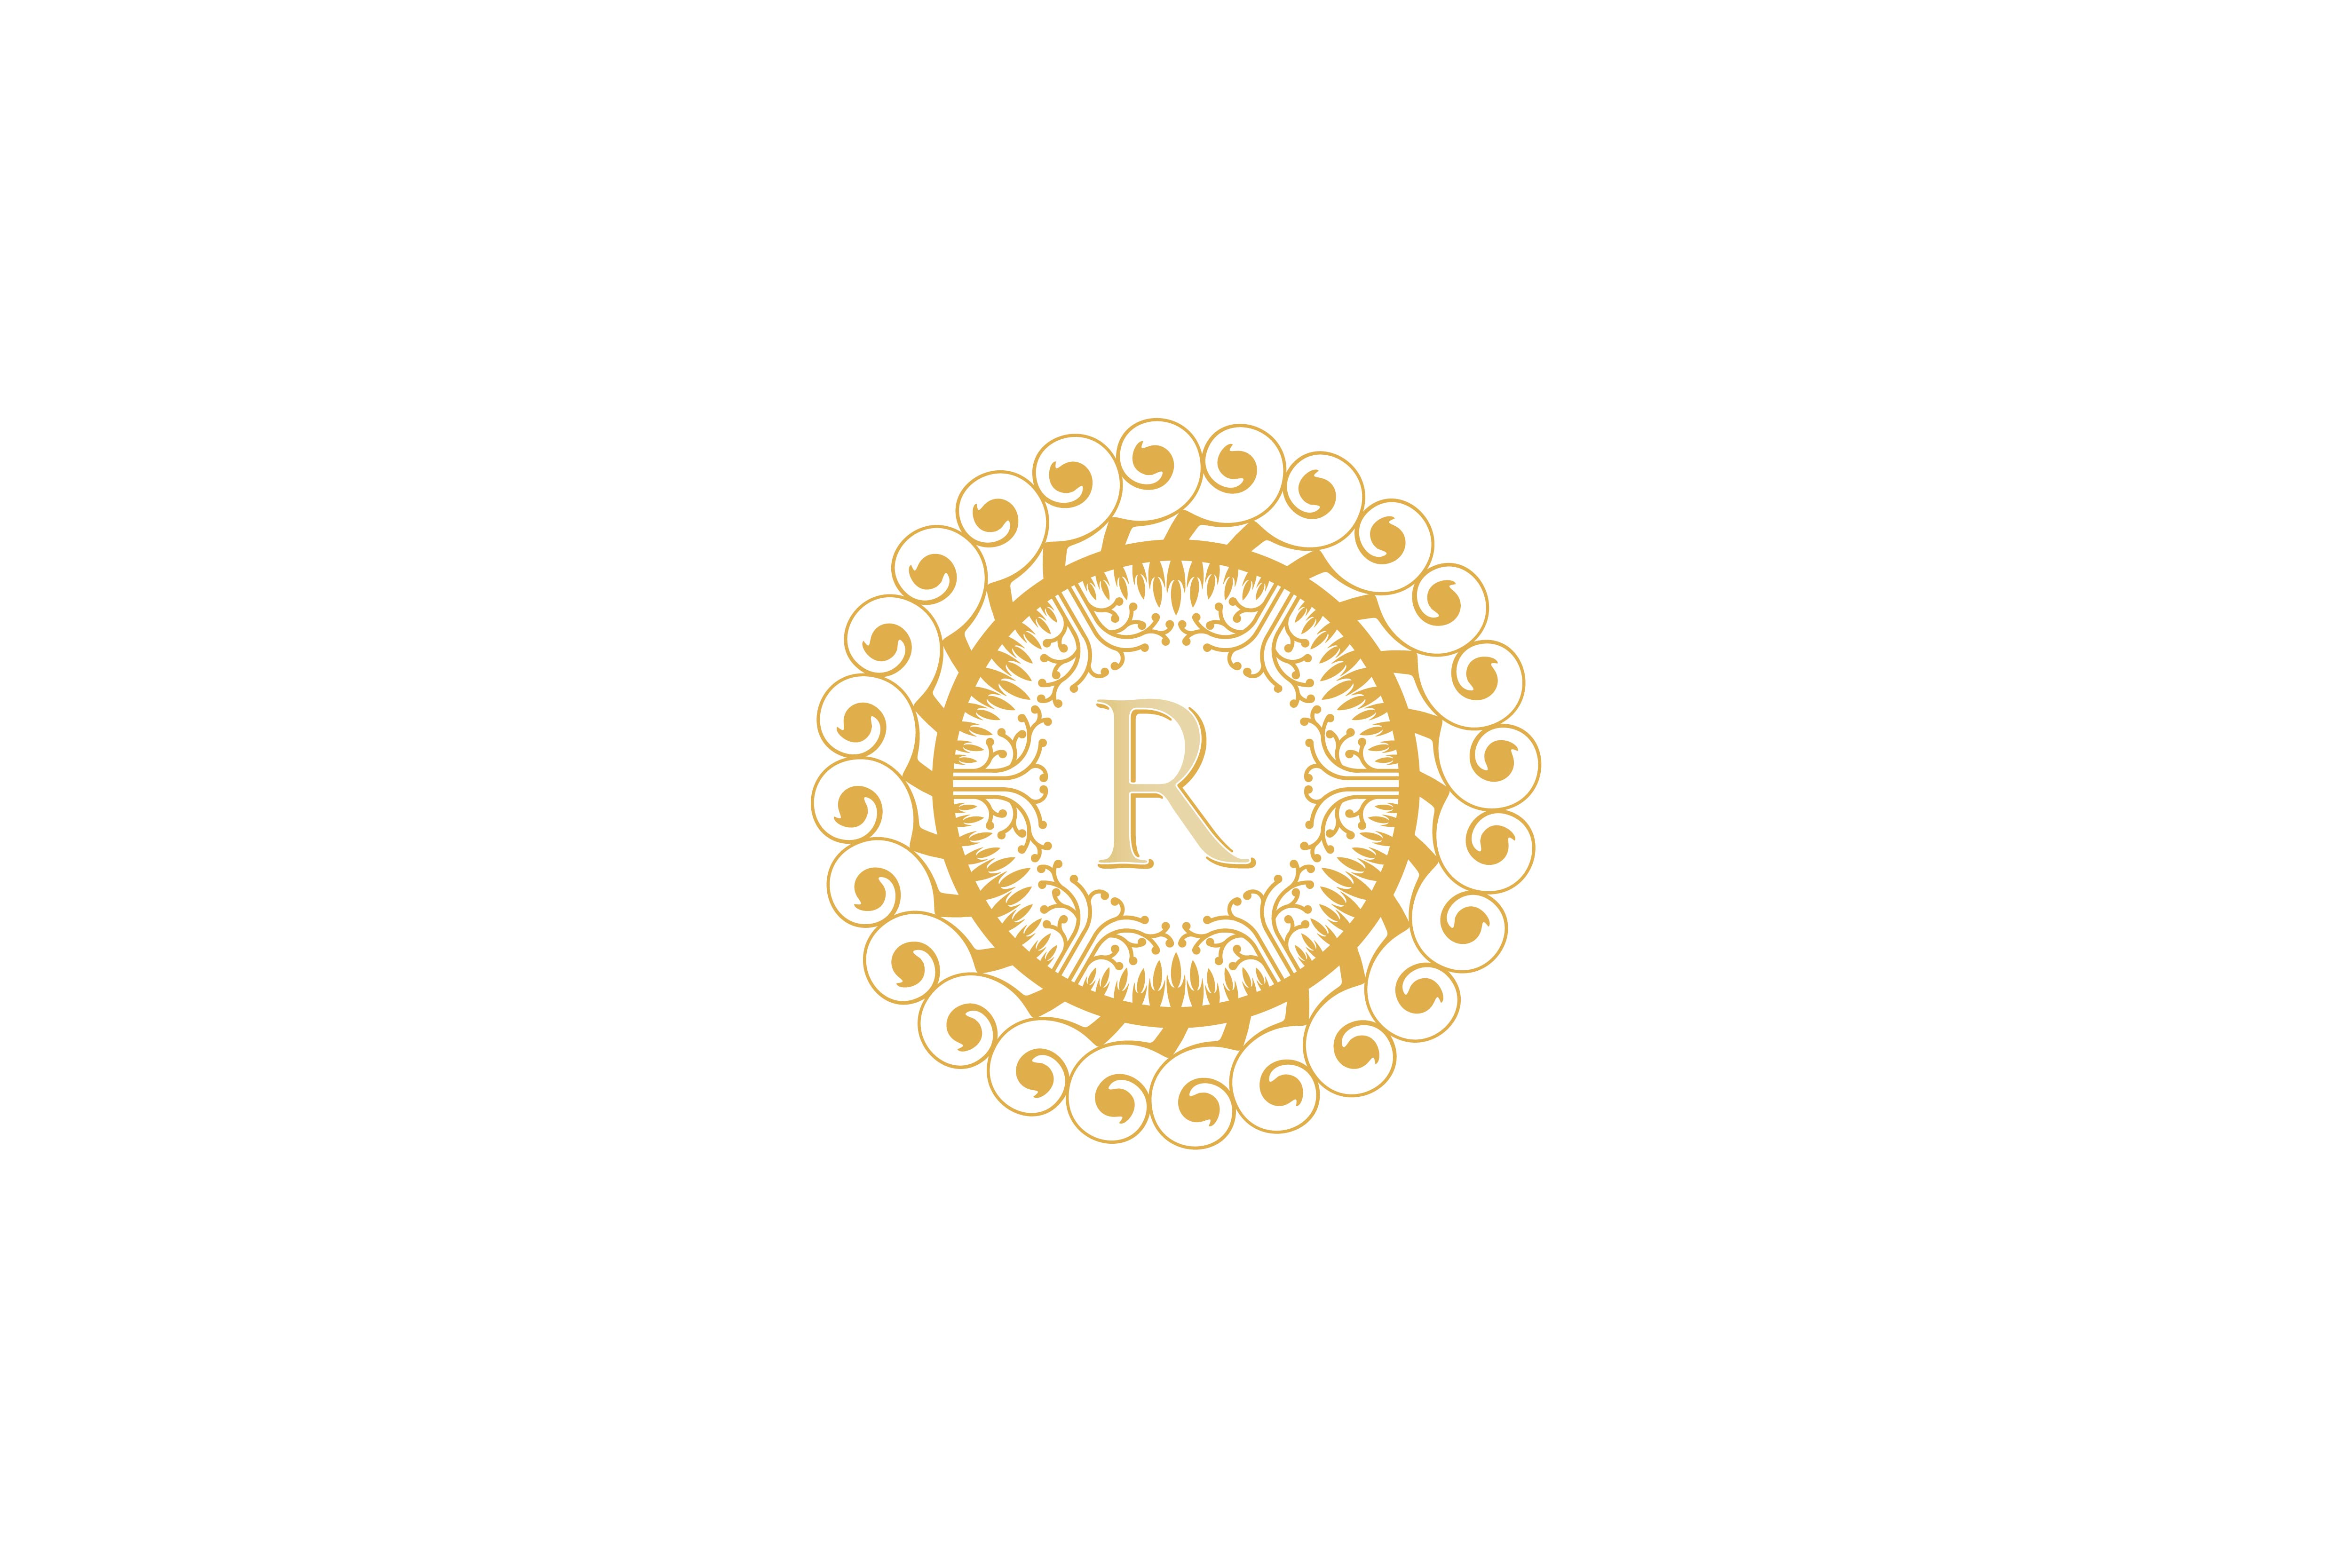 Initial R Restaurant Royalty Boutique Cafe Hotel Heraldic